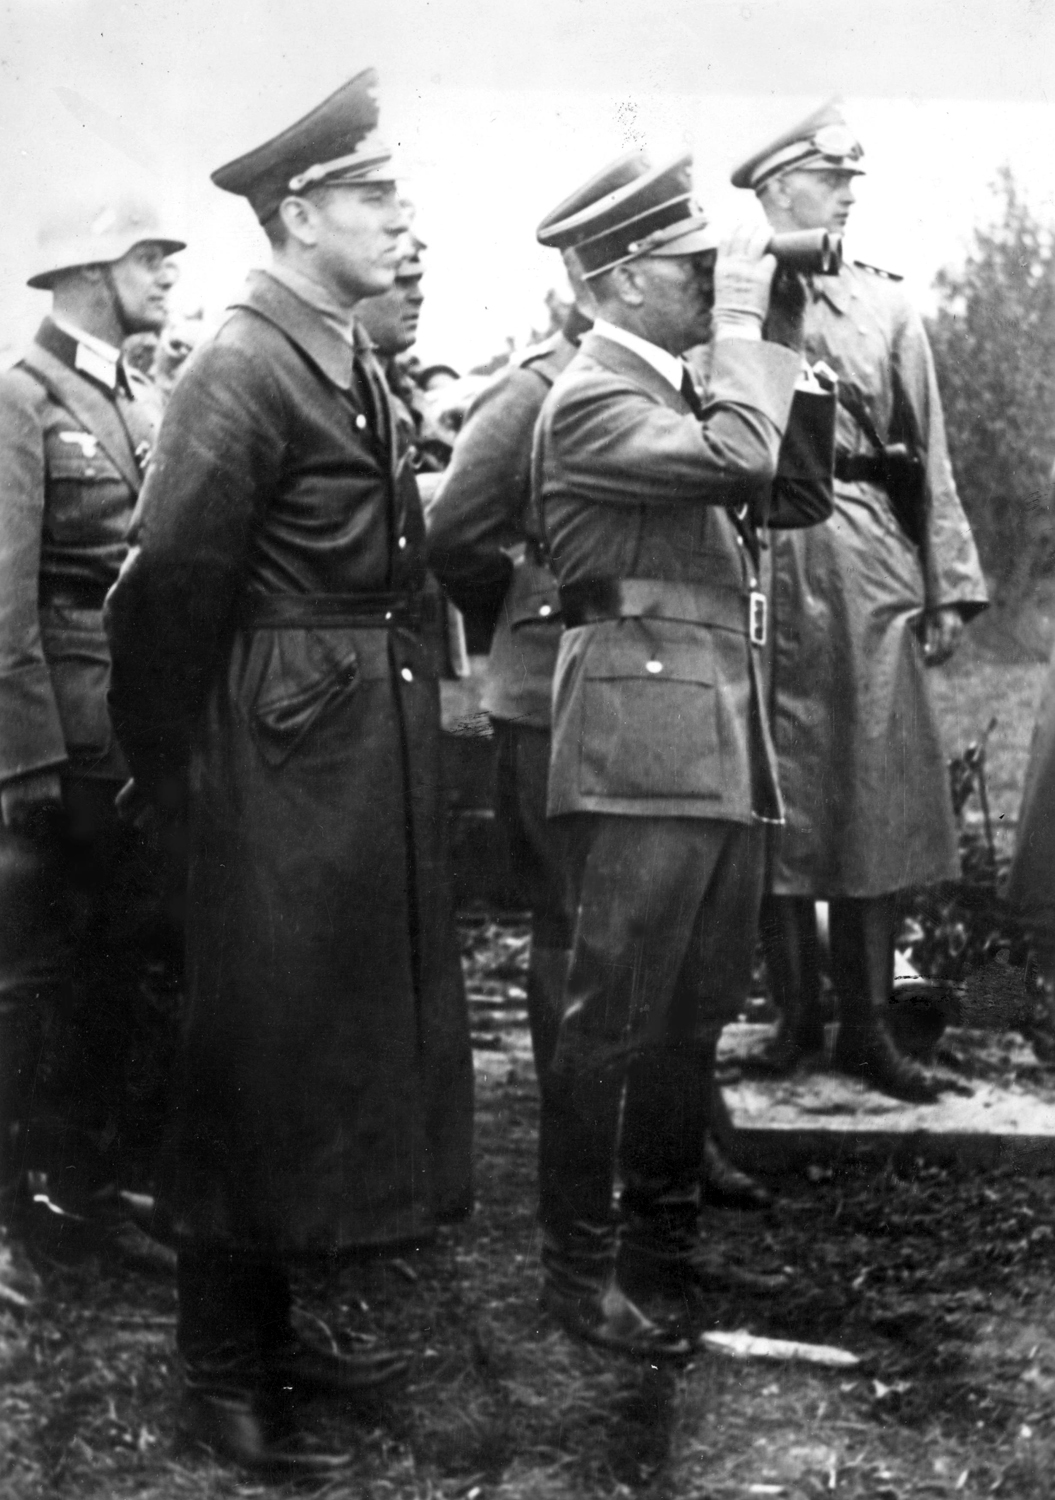 Adolf Hitler observes the town of Gdańsk, with Albert Forster beside him